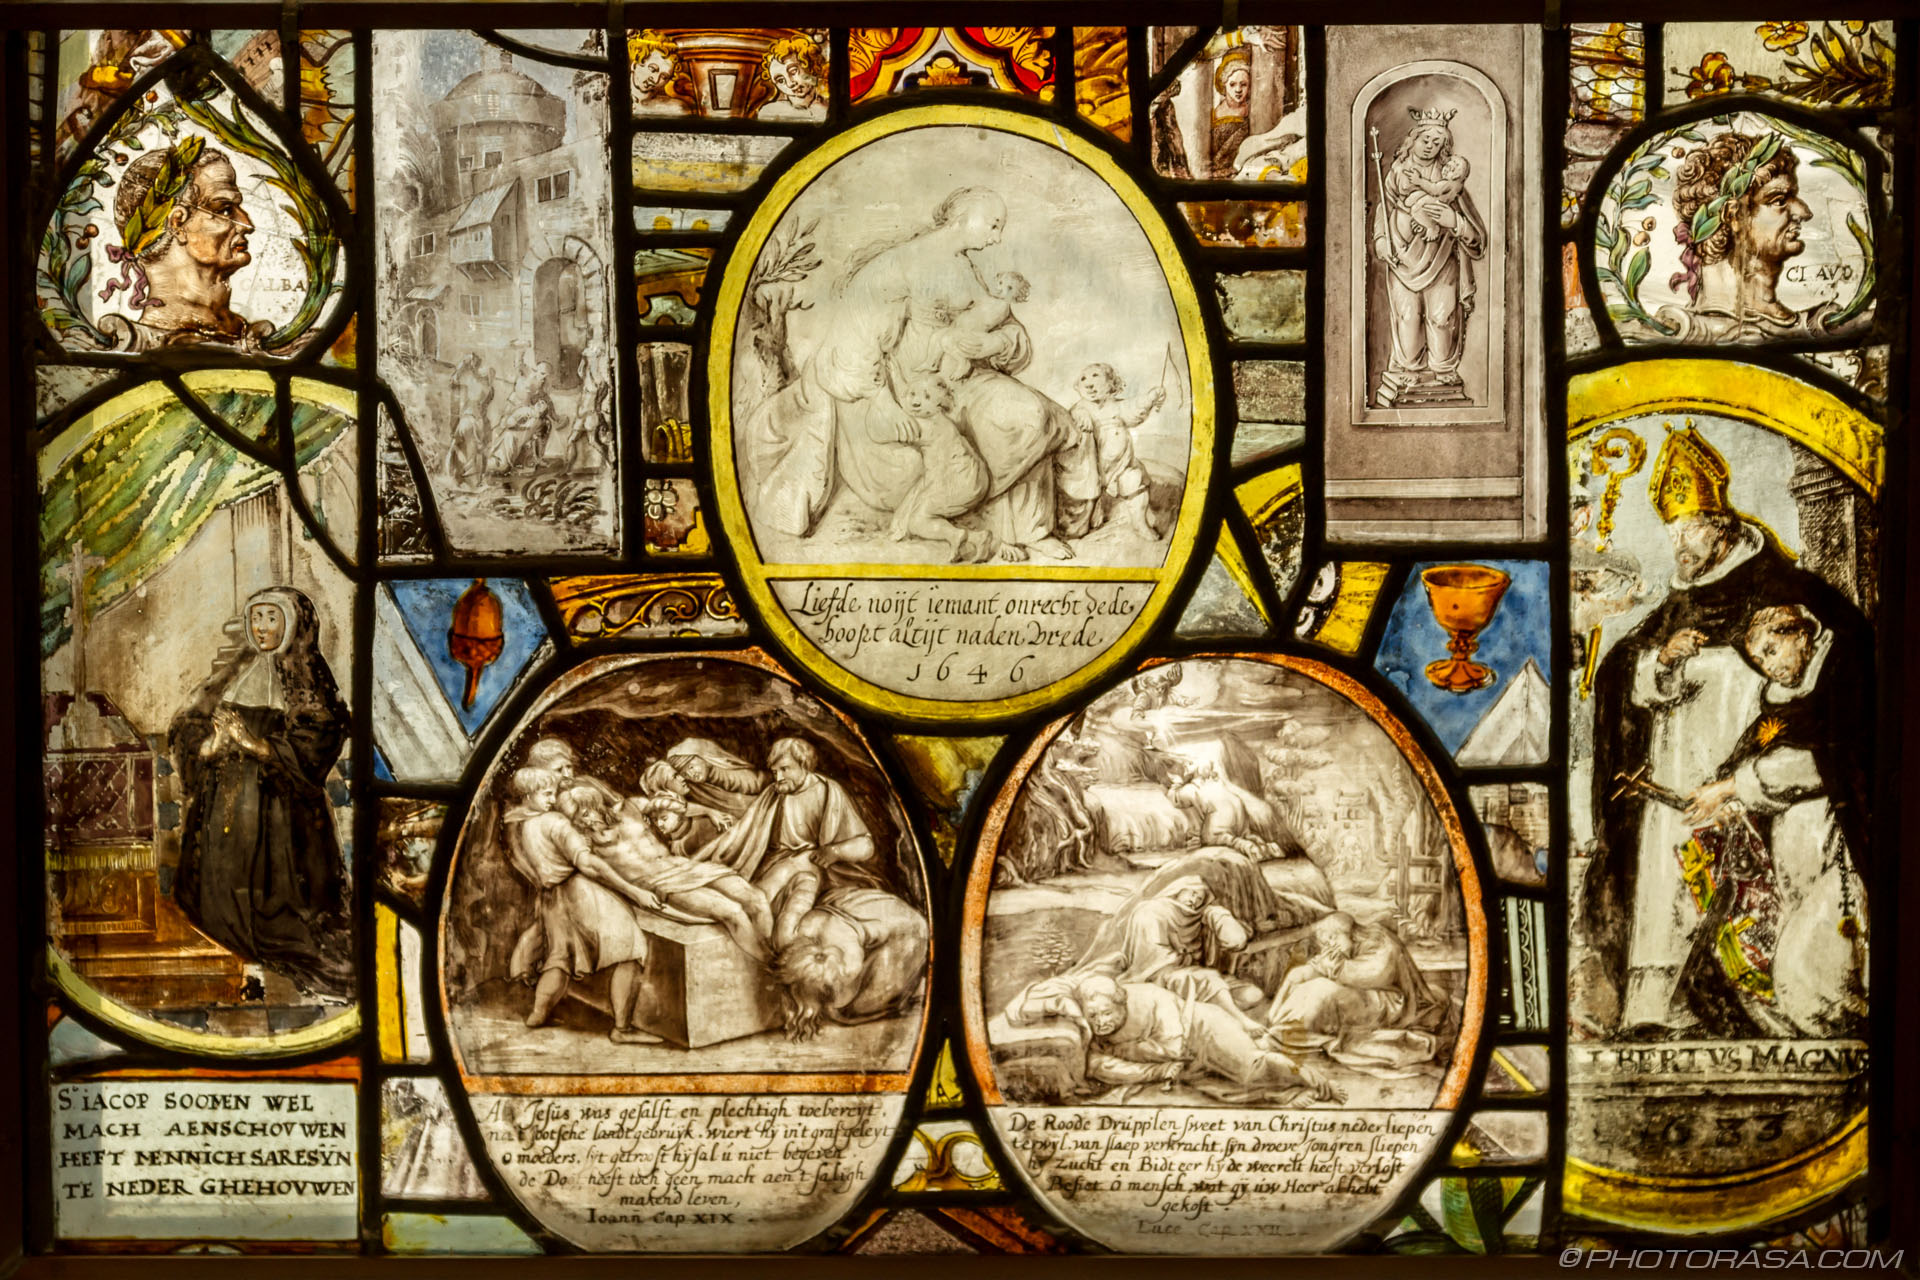 http://photorasa.com/old-dutch-and-flemish-stained-glass/dutch-stained-glass-of-biblical-scenes/